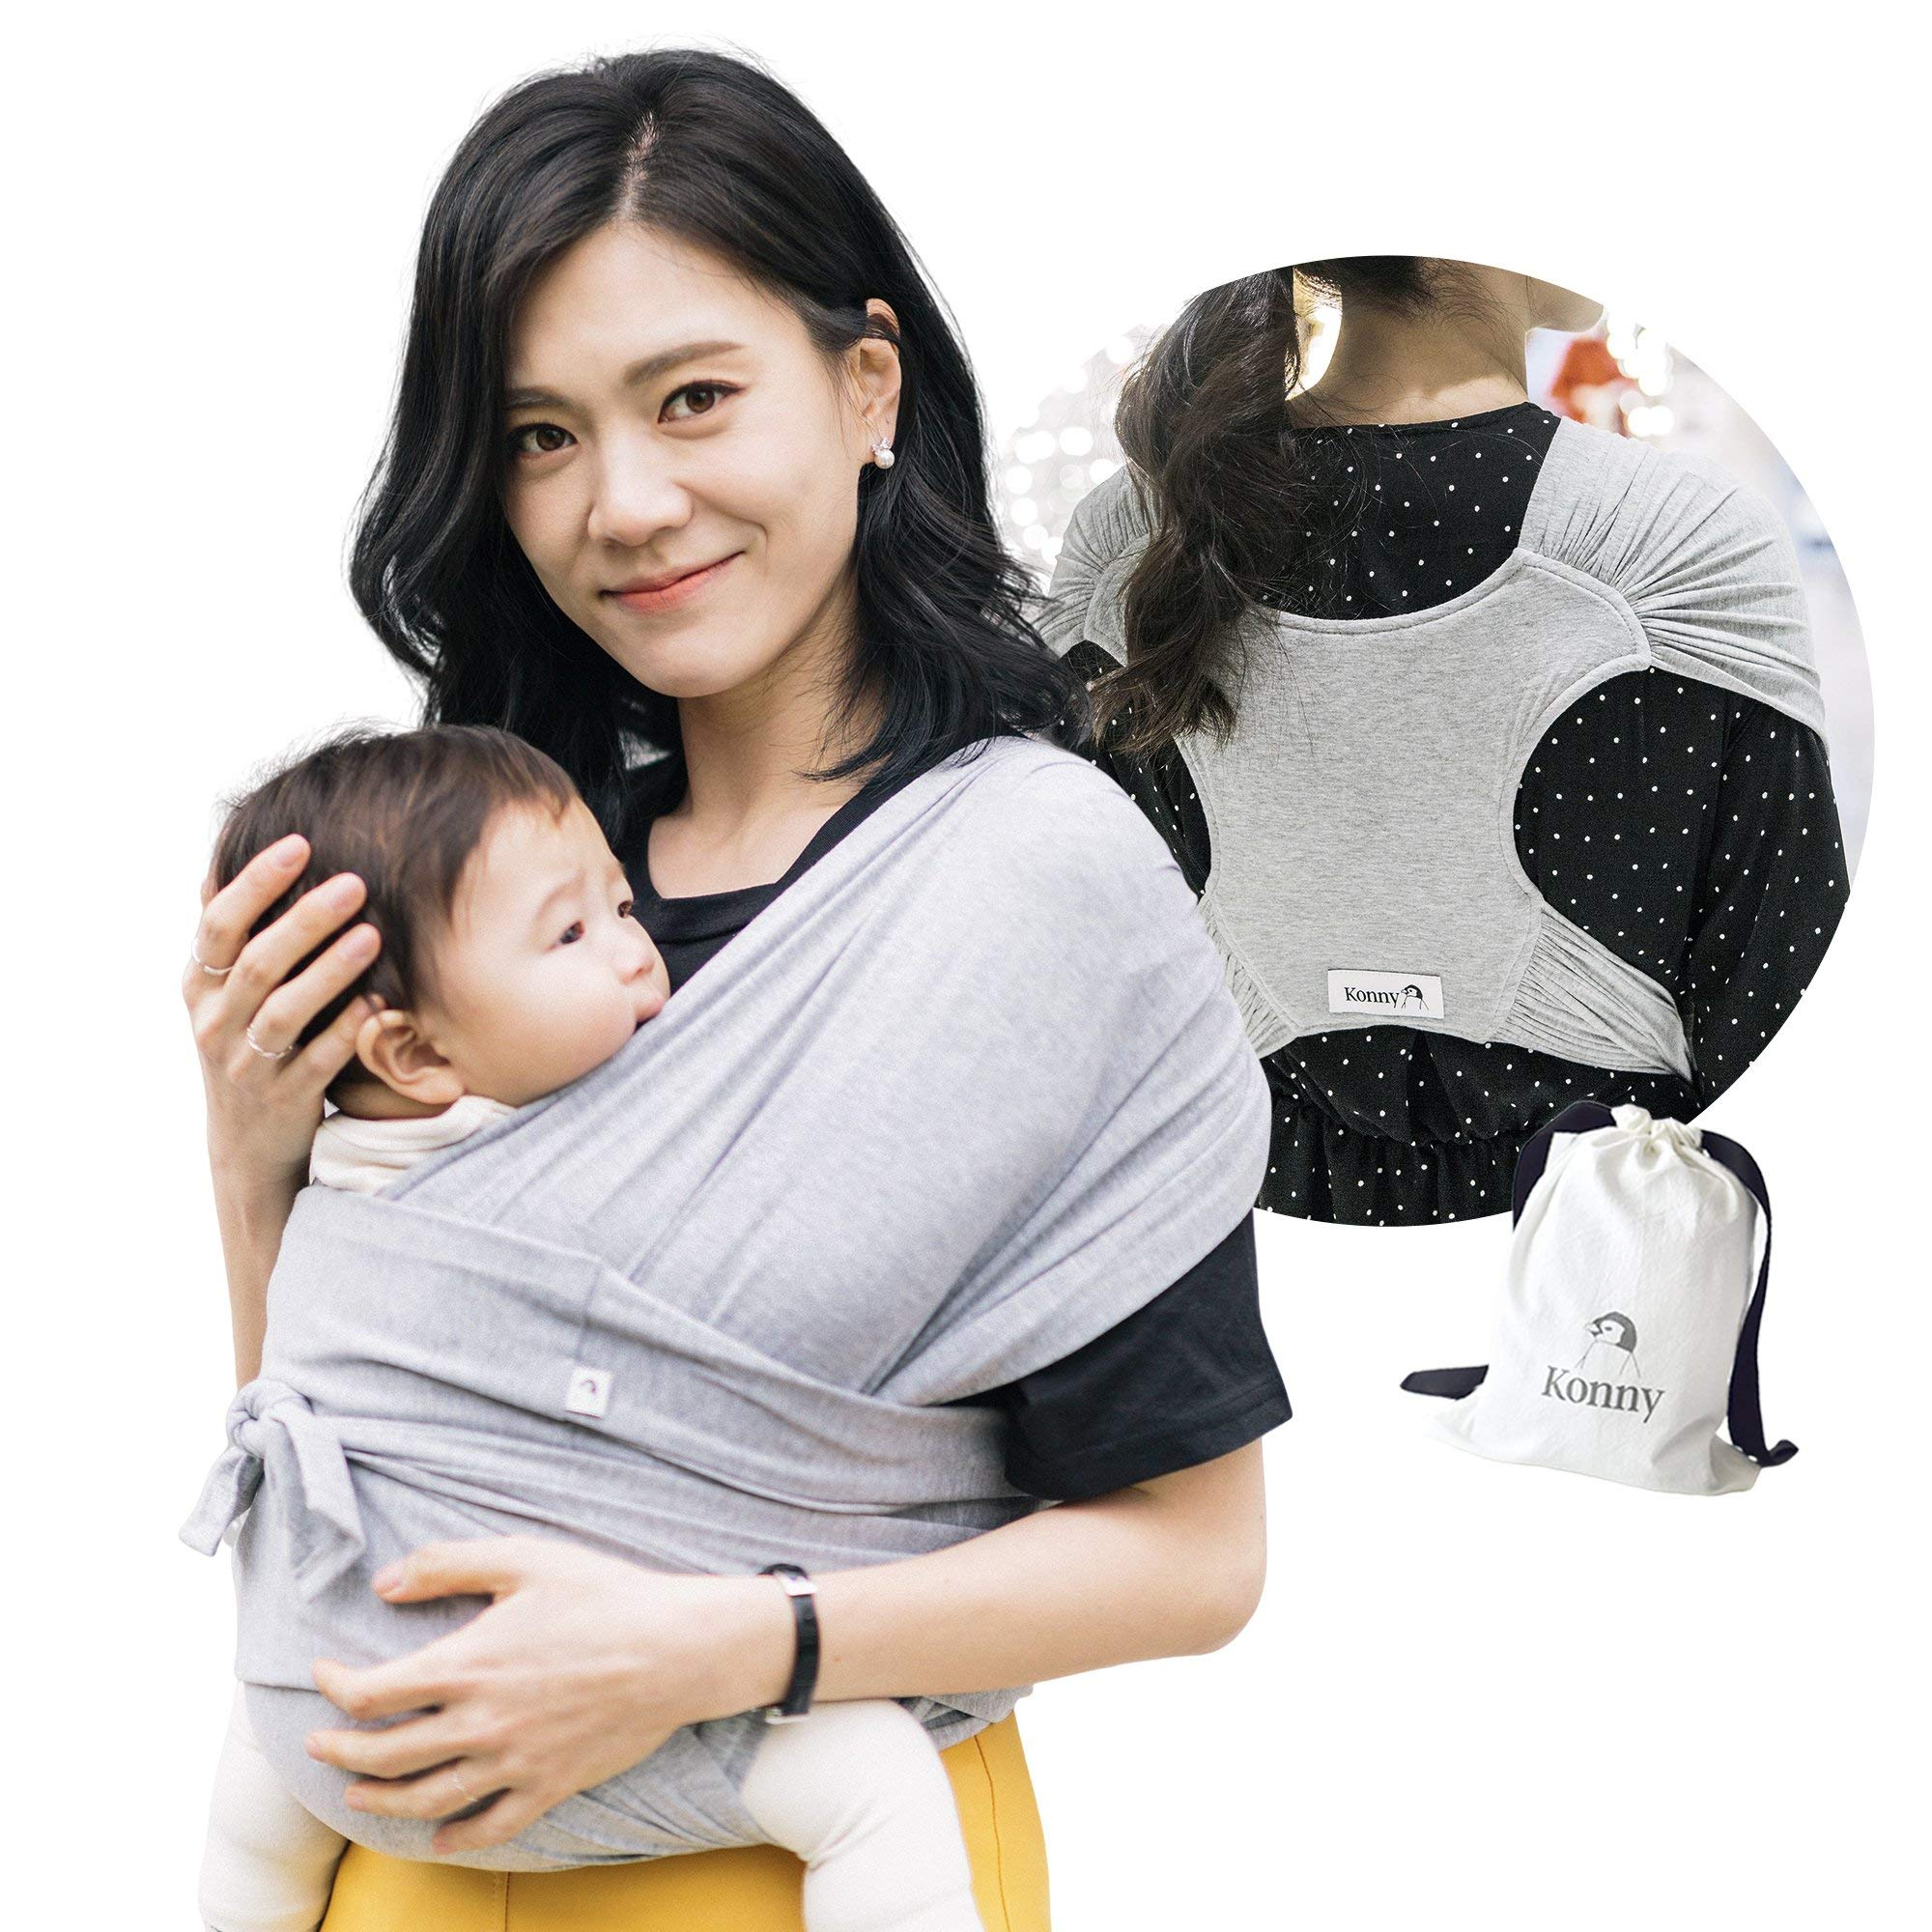 Konny Baby Carrier | Ultra-Lightweight, Hassle-Free Baby Wrap Sling | Newborns, Infants to 44 lbs Toddlers | Soft and Breathable Fabric | Sensible Sleep Solution (Grey, XL)